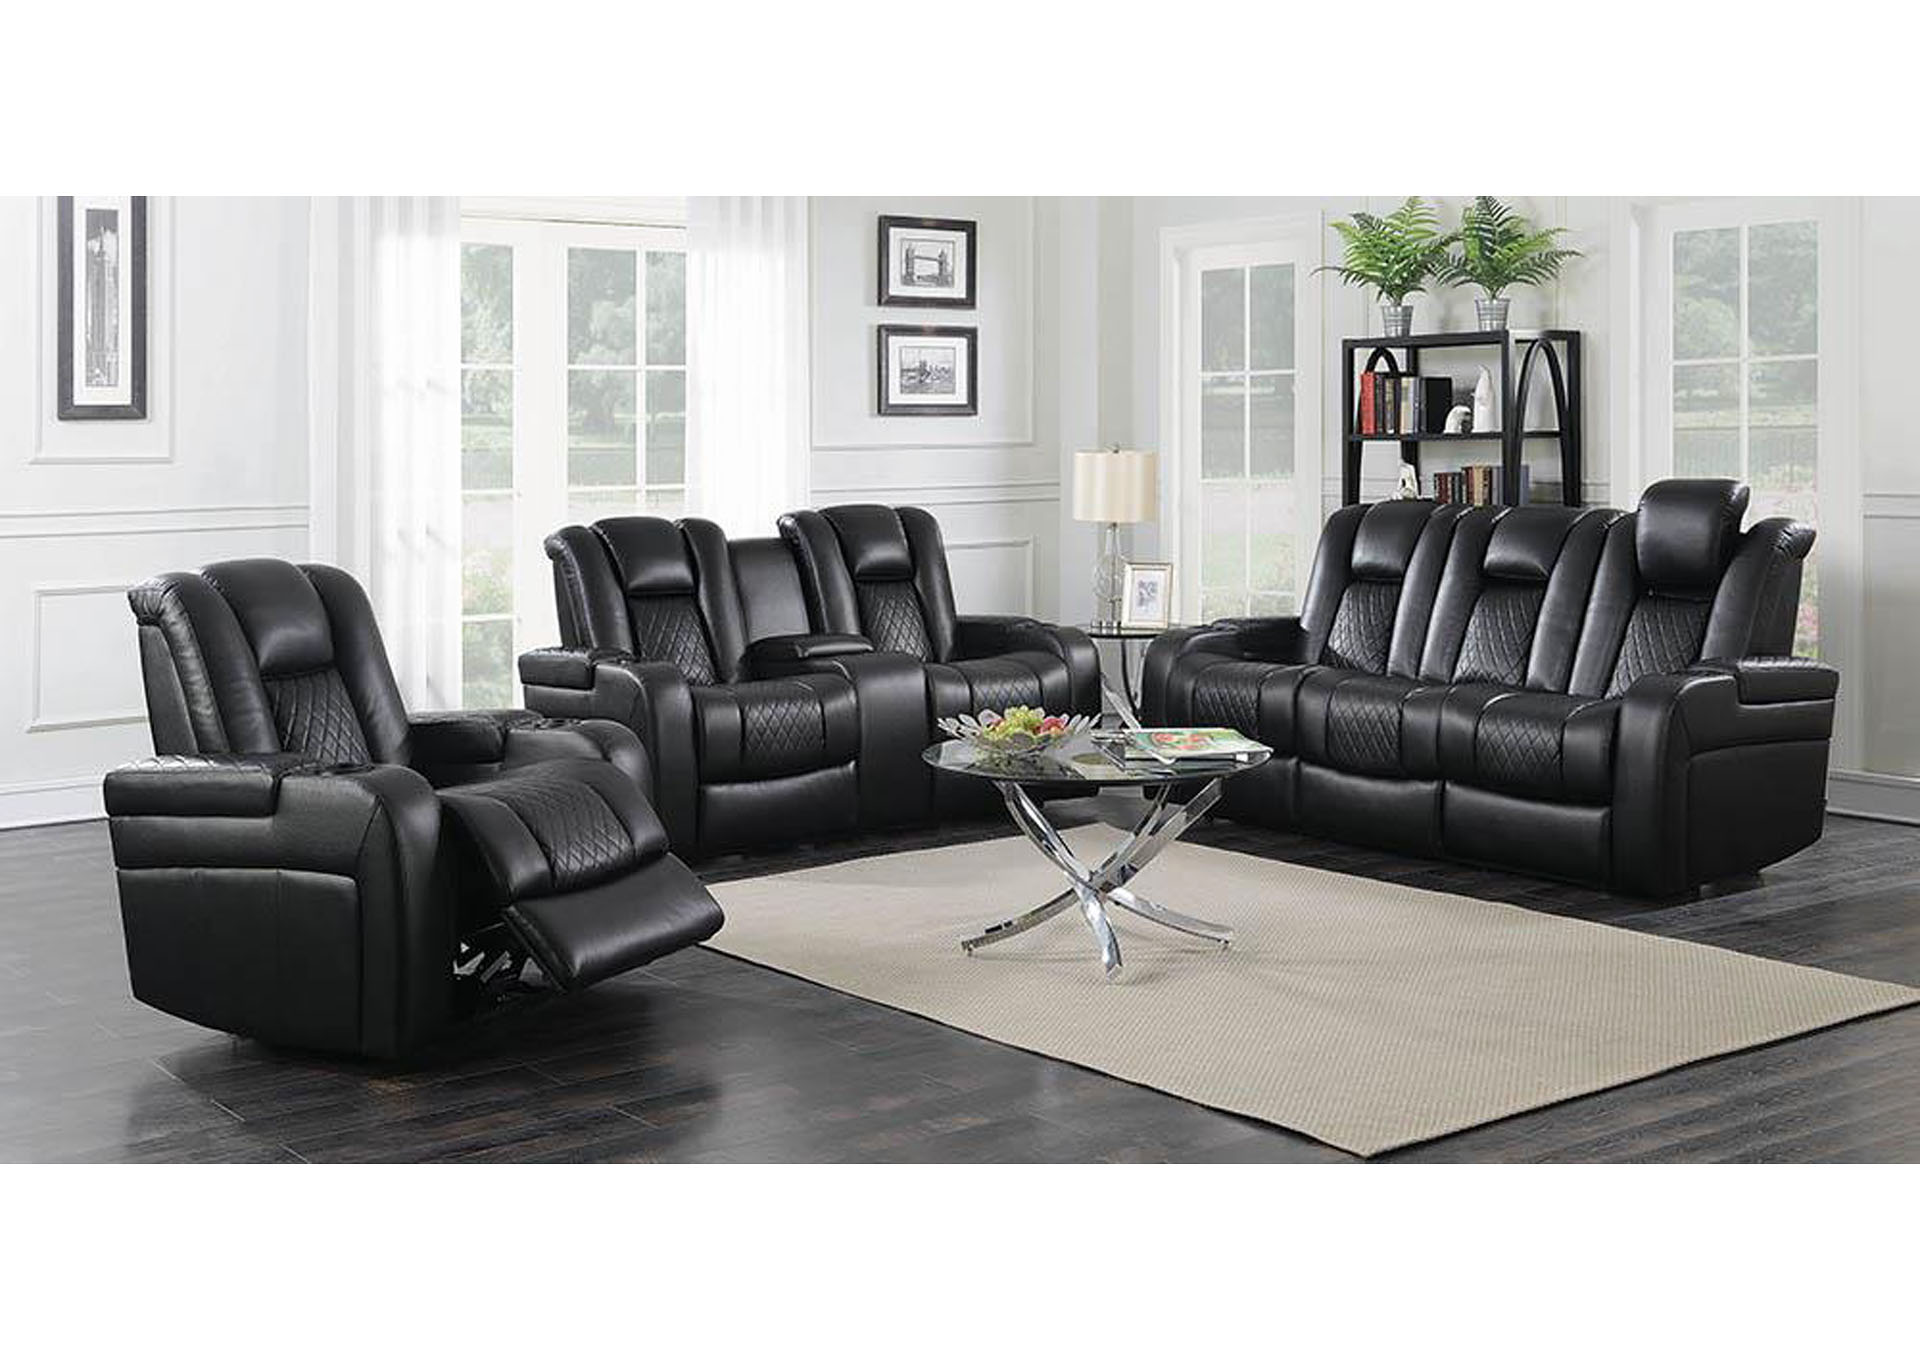 Eerie Black Delangelo Black Power Motion Reclining Sofa,Coaster Furniture